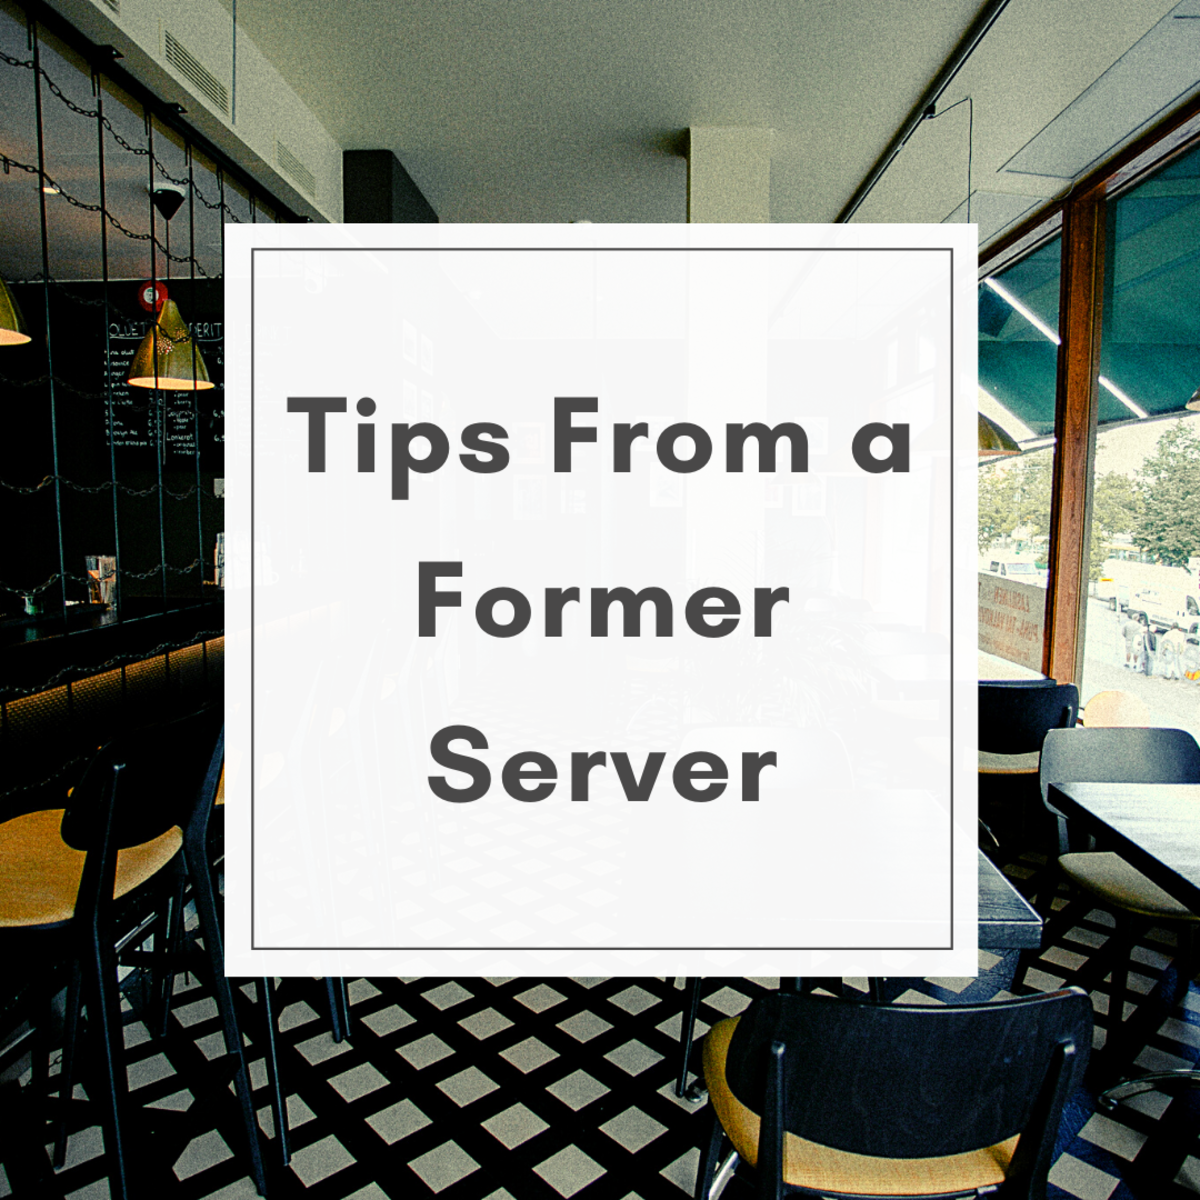 Tips From a Former Server